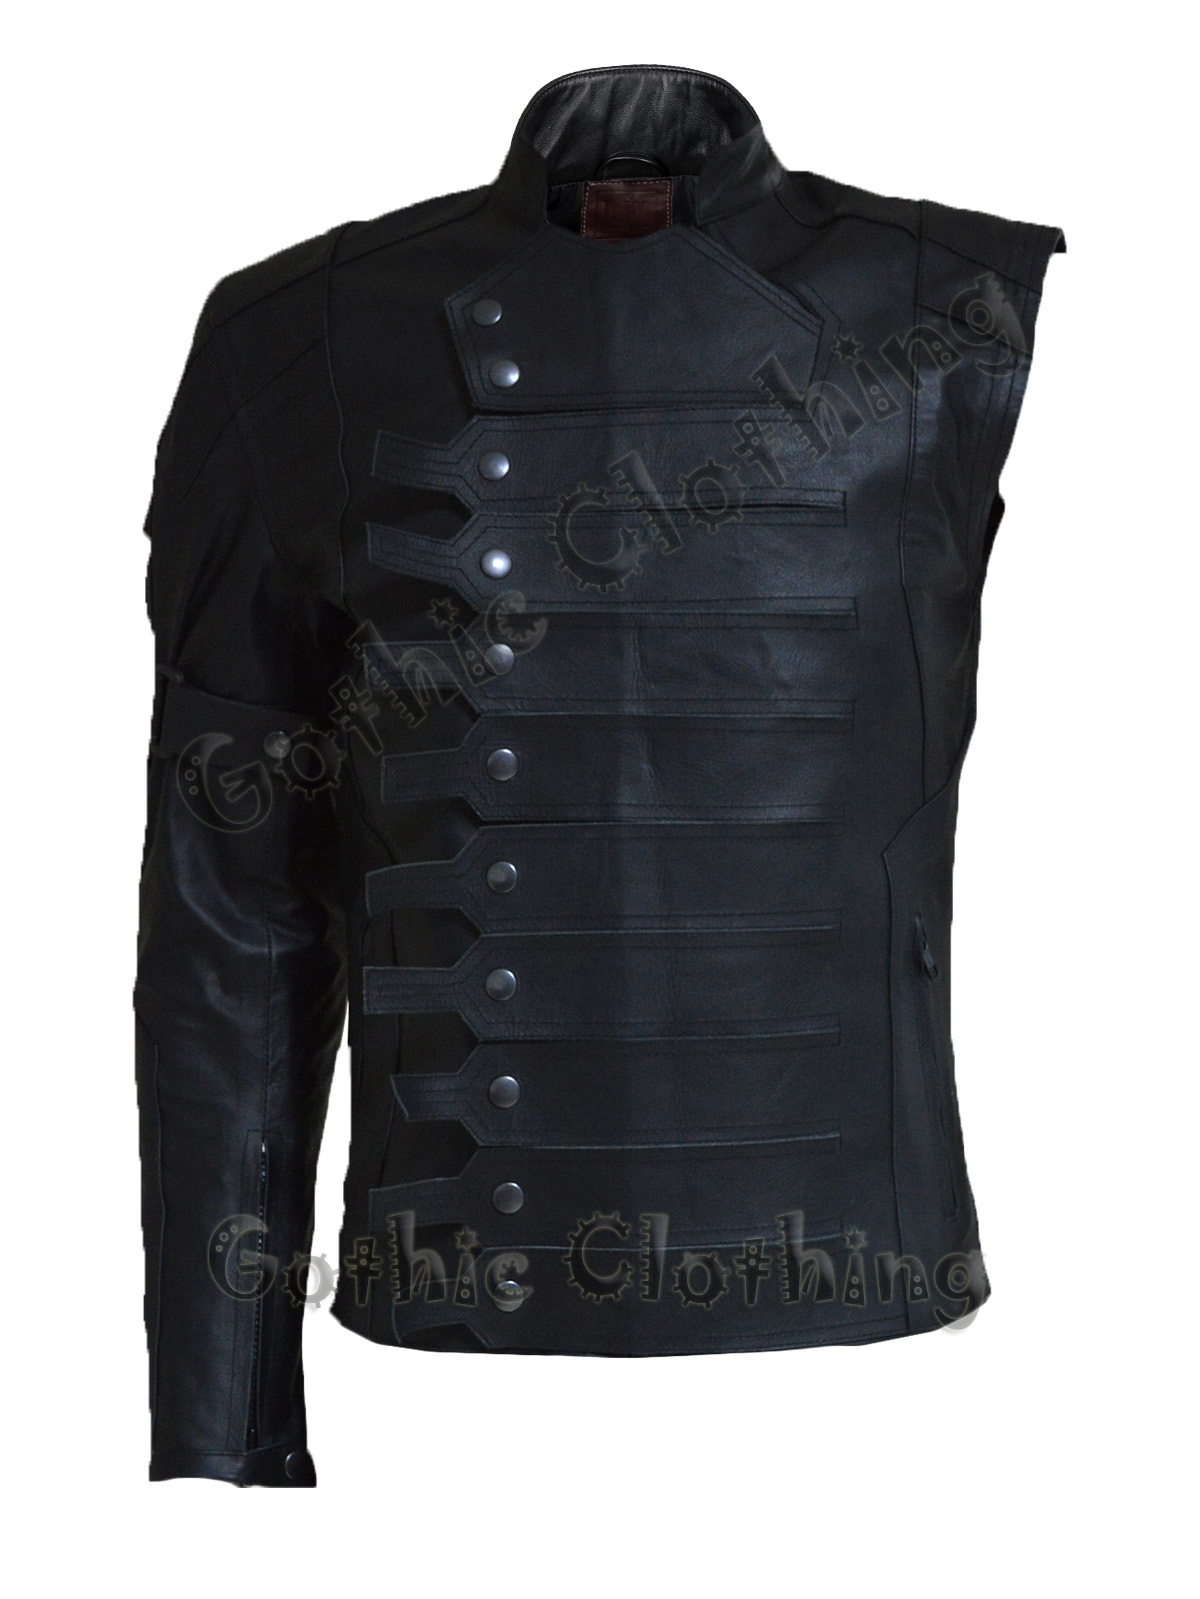 rebelsmarket_gothic_soldier_men_leather_jacket_steam_punk_military_fashion_leather_jacket_jackets_3.jpg